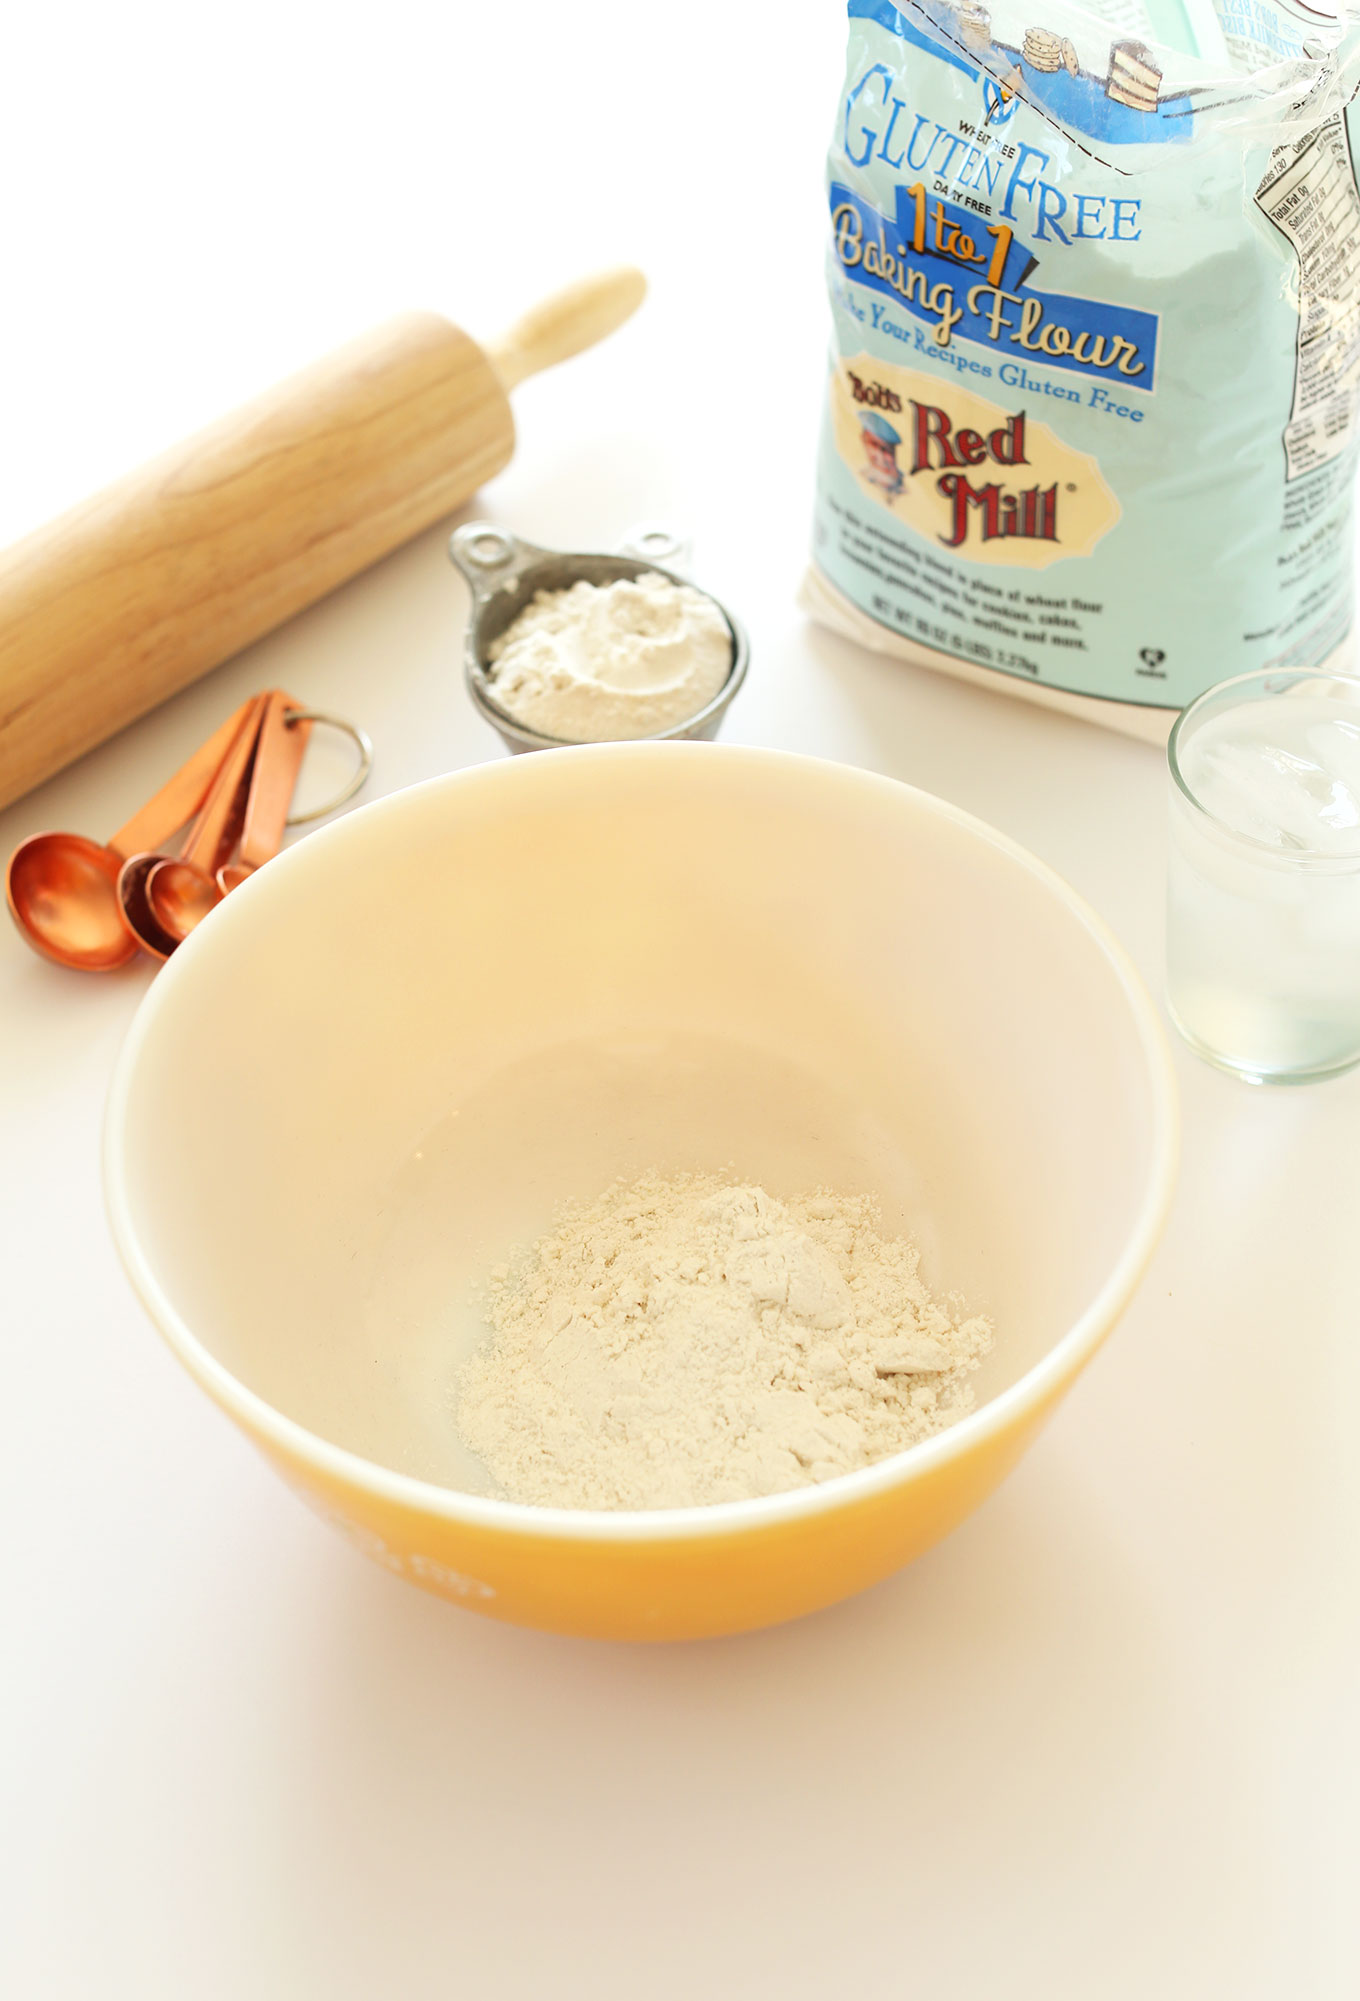 Bowl and measuring cup of Bob's Red Mill Gluten-Free Baking Flour next to a rolling pin and measuring spoons